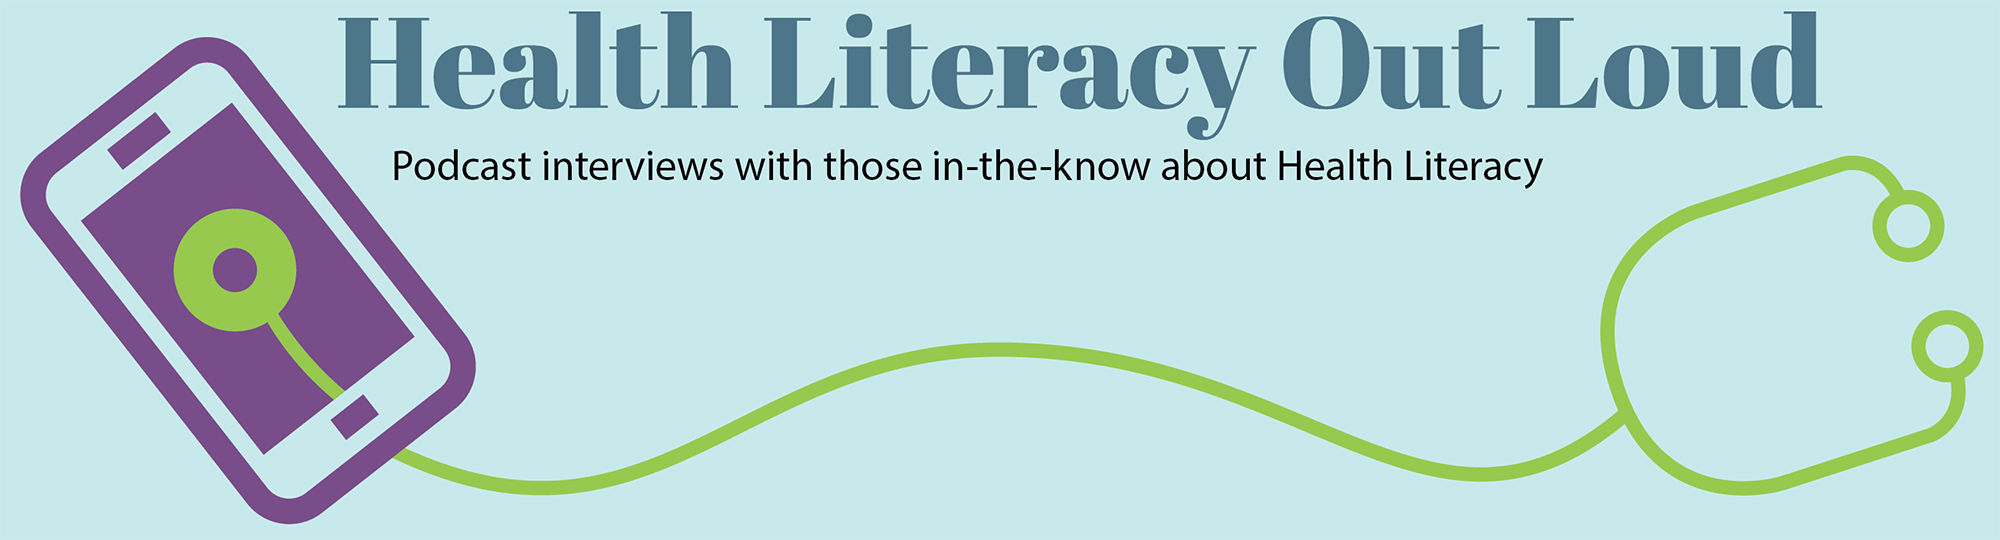 Health Literacy Out Loud Podcasts